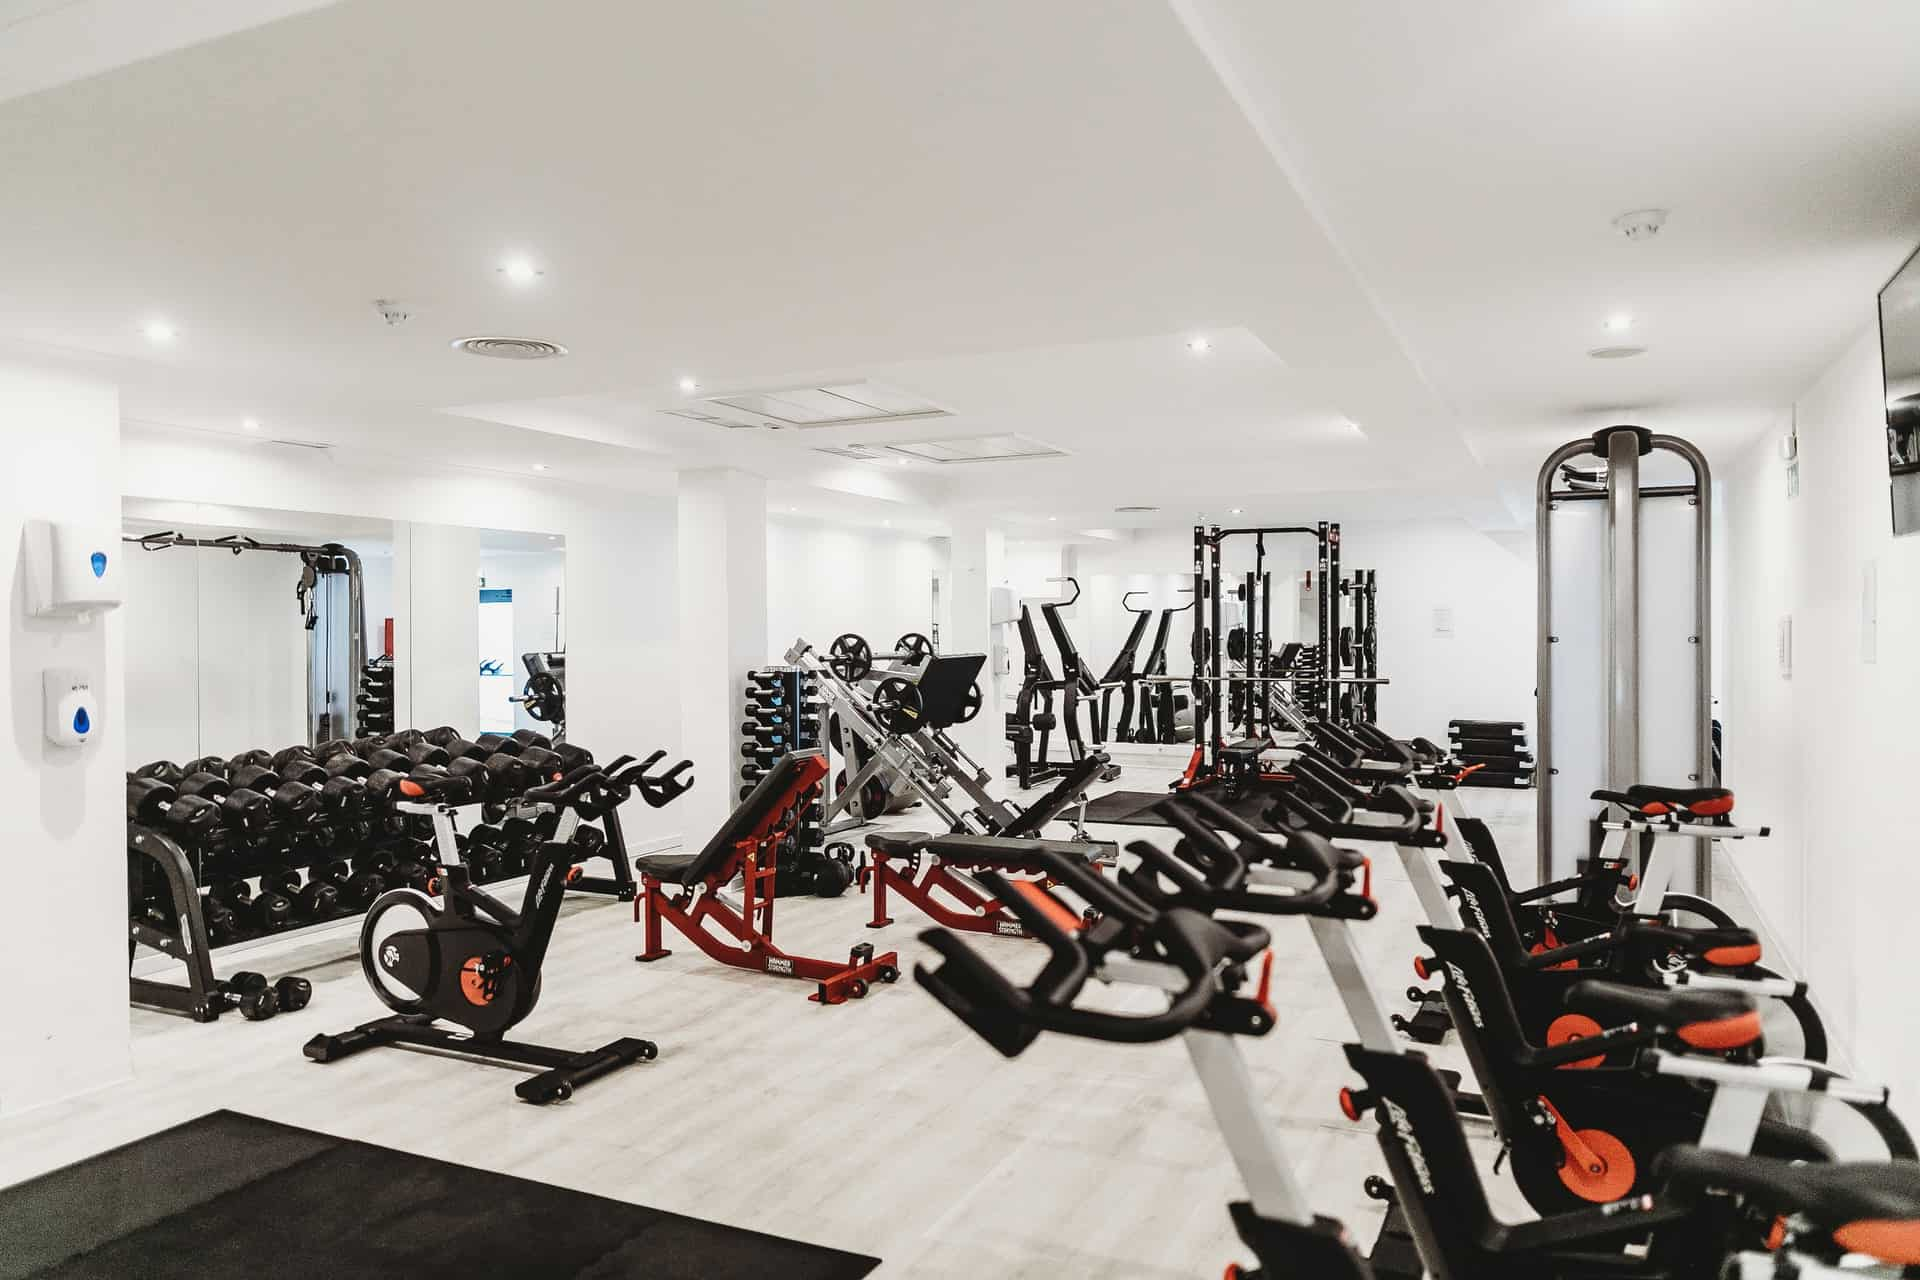 Exercise Gear and Equipment